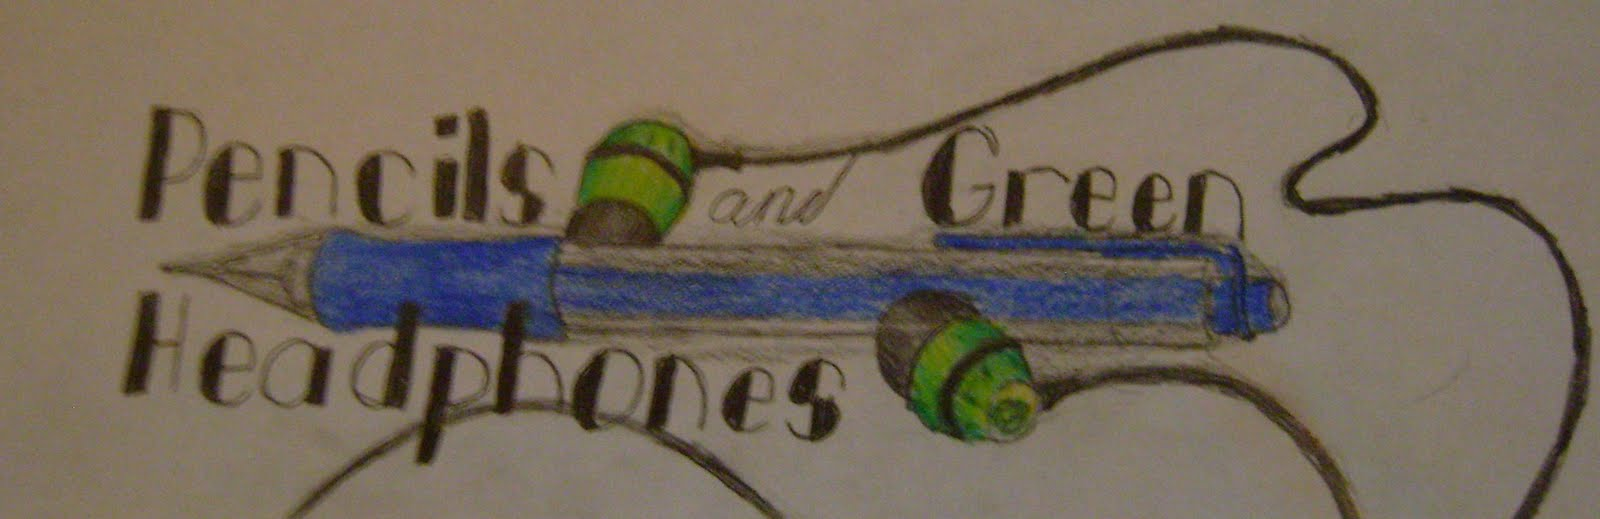 Pencils and Green Headphones